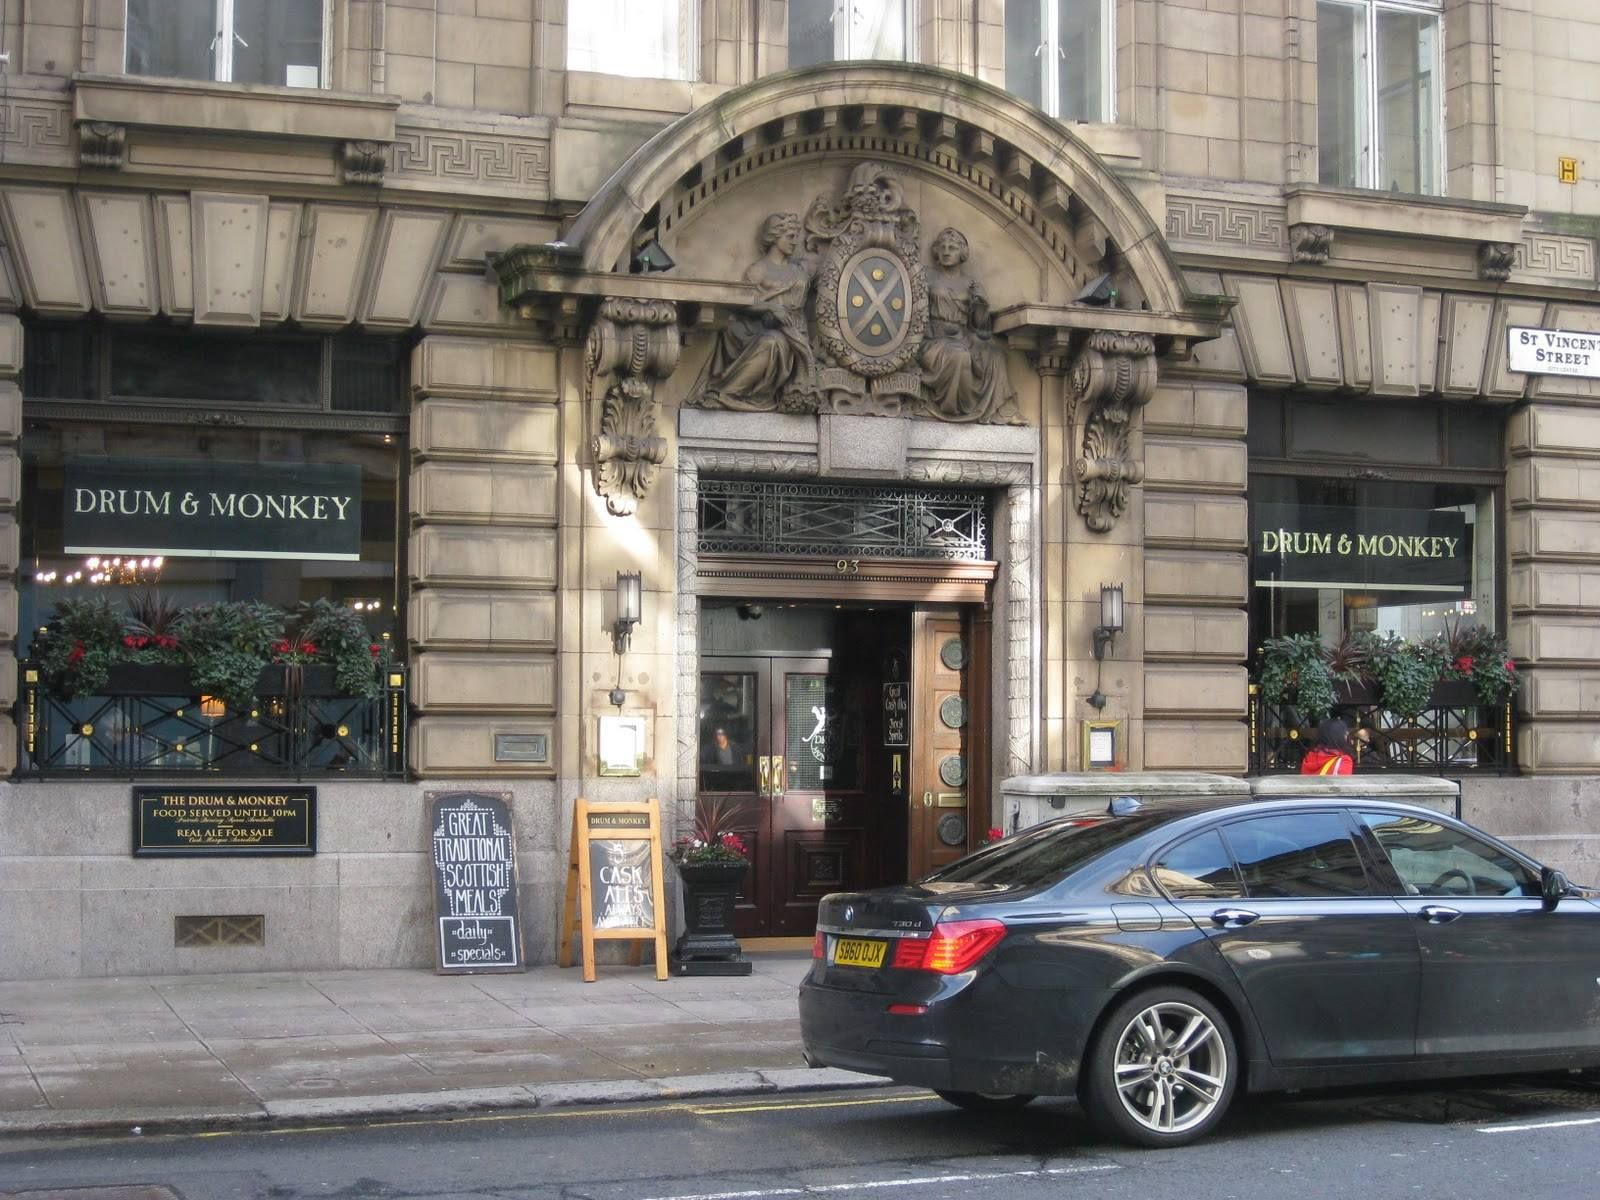 the drum and monkey - dove mangiare a glasgow